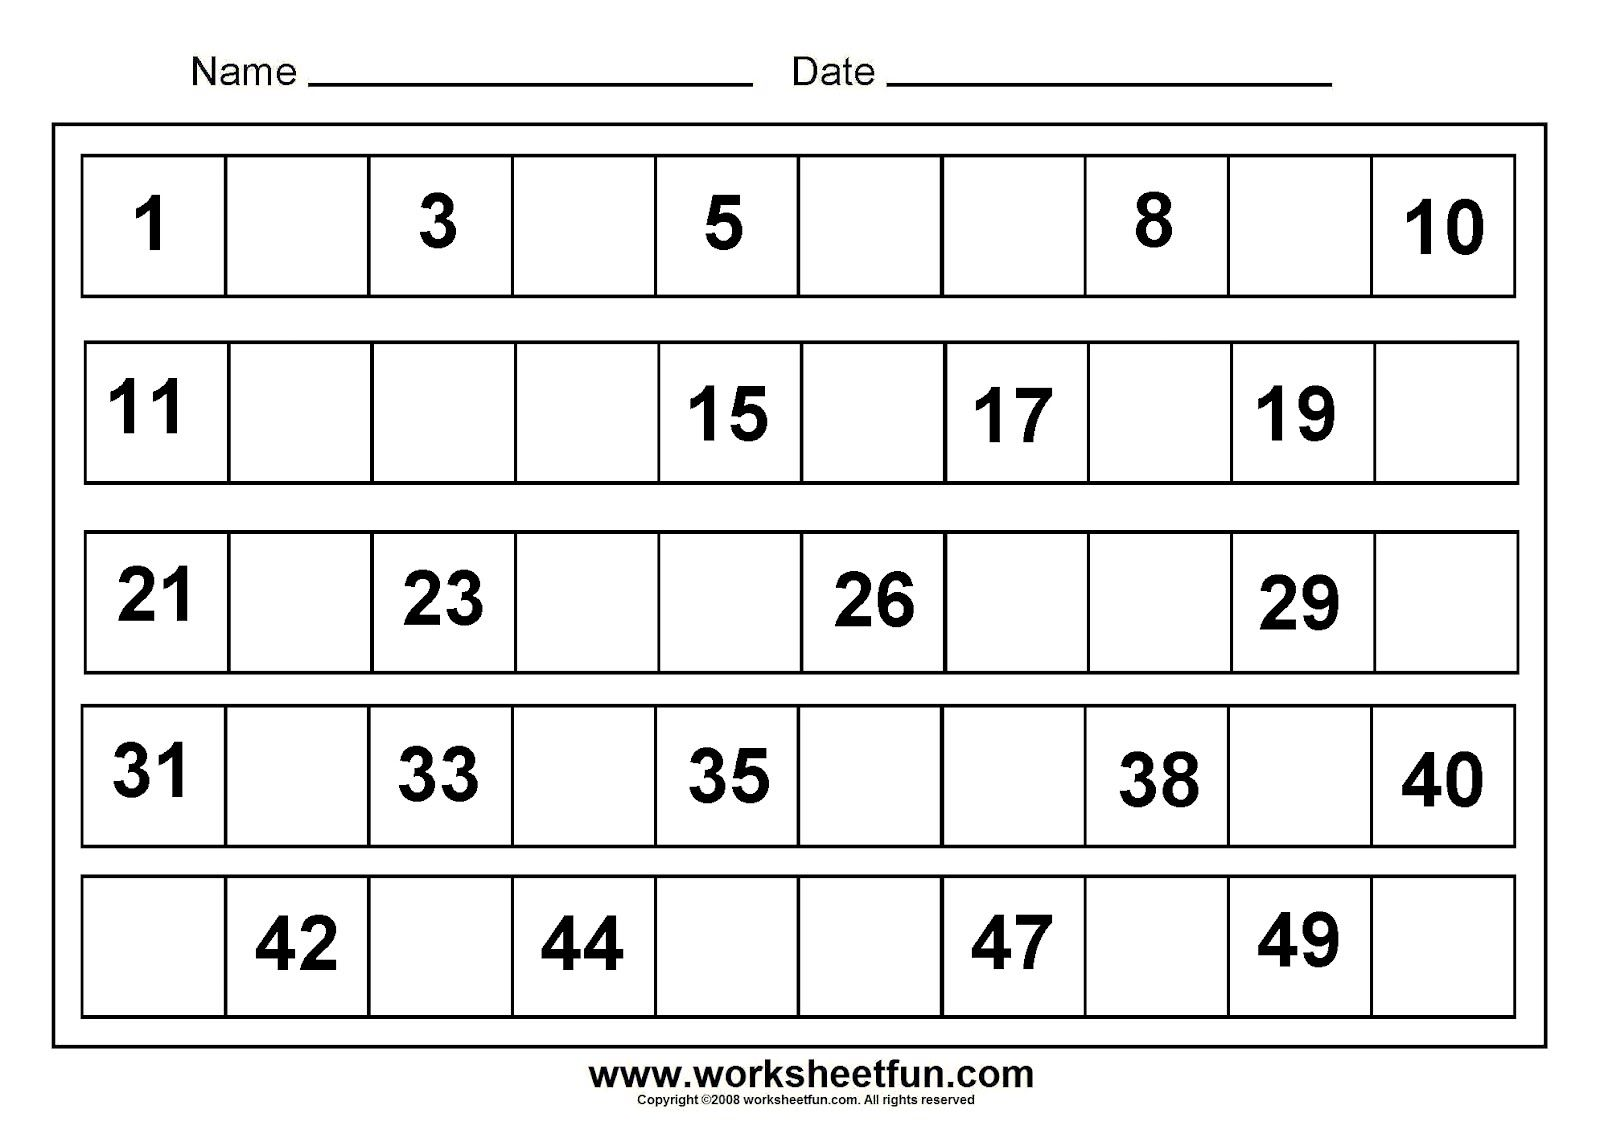 Worksheets Printable Free Worksheets free math worksheets kindergarten pichaglobal 1000 images about work sheets on pinterest count free